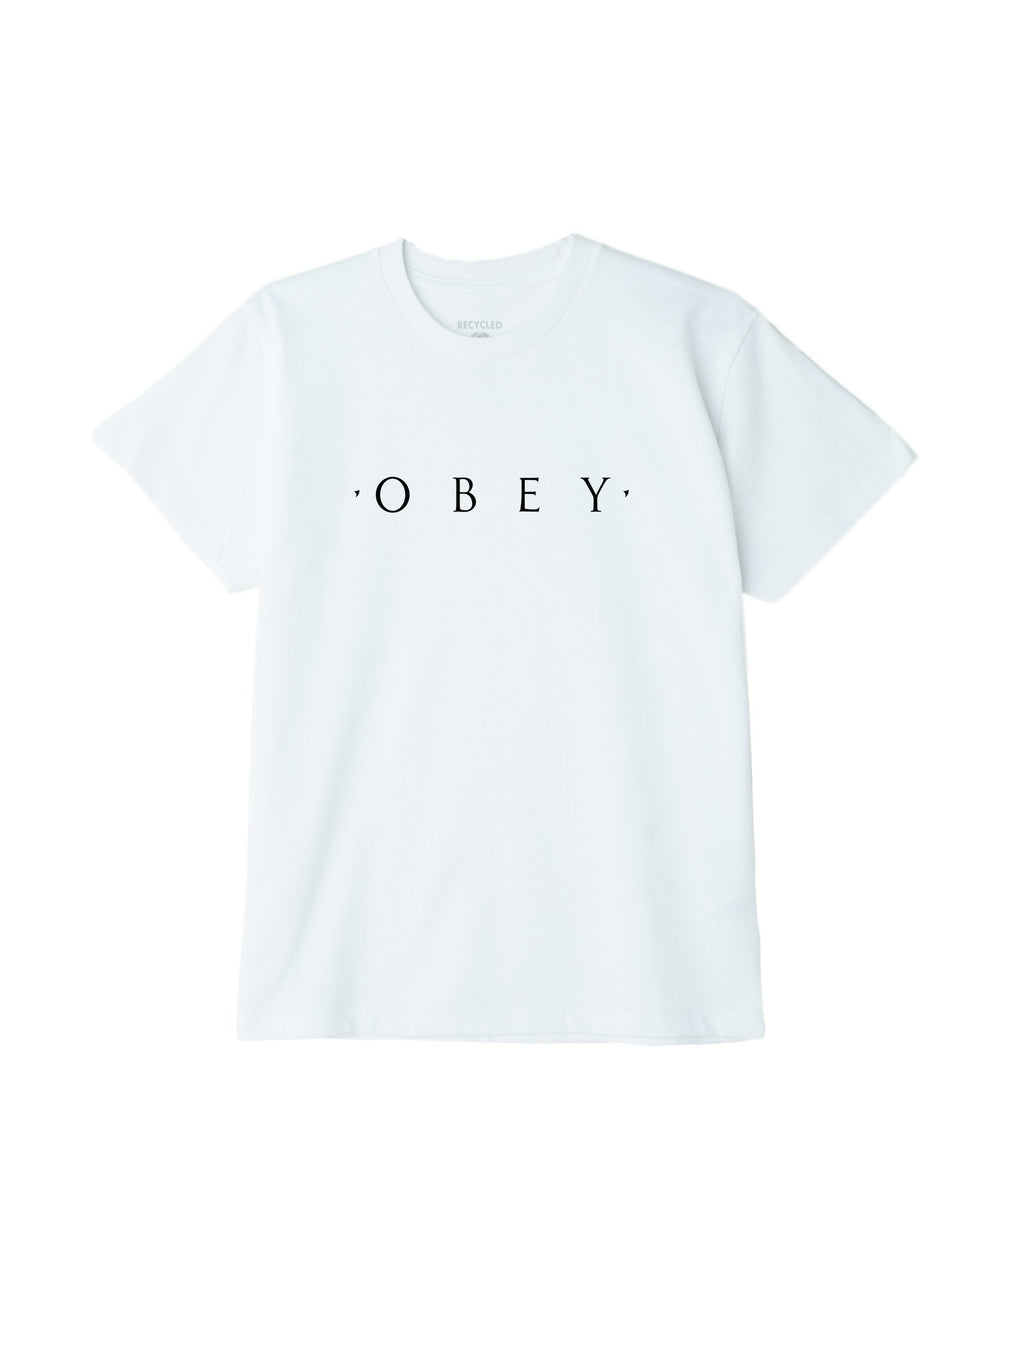 NOVEL OBEY SUSTAINABLE TEE